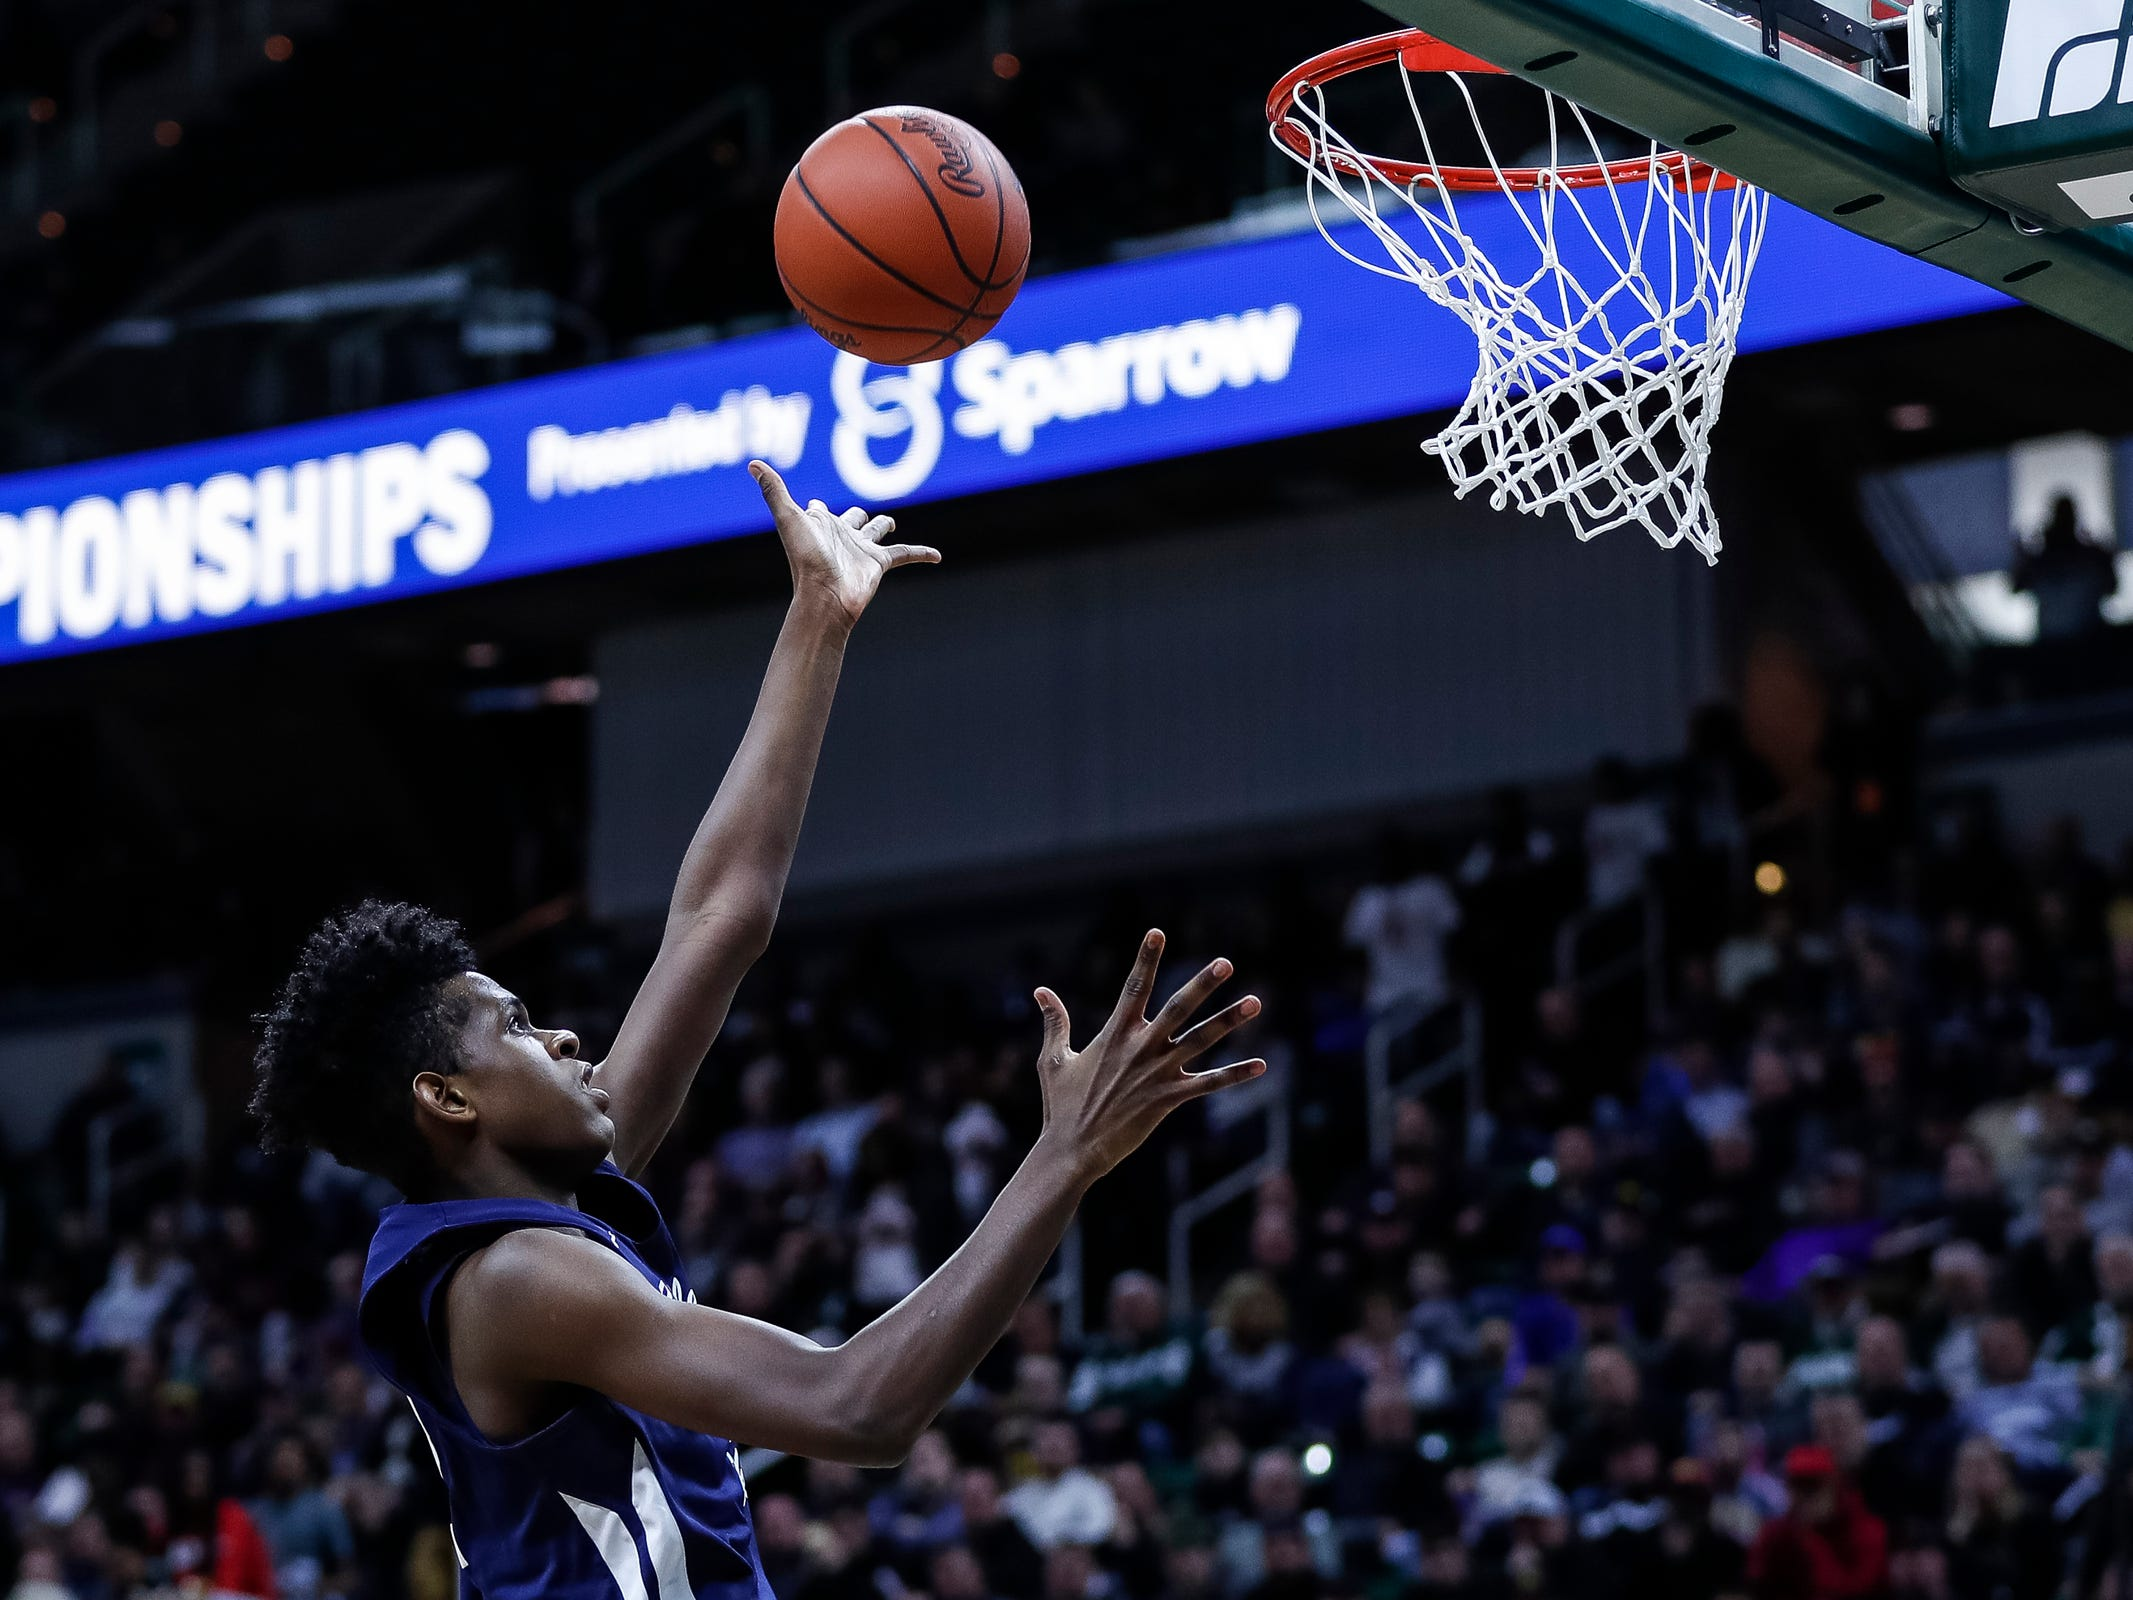 Harper Woods Chandler Park's Emmanuel Ndambi (12) makes a layup against River Rouge during the first half of MHSAA Division 2 semifinal at the Breslin Center in East Lansing, Friday, March 15, 2019.